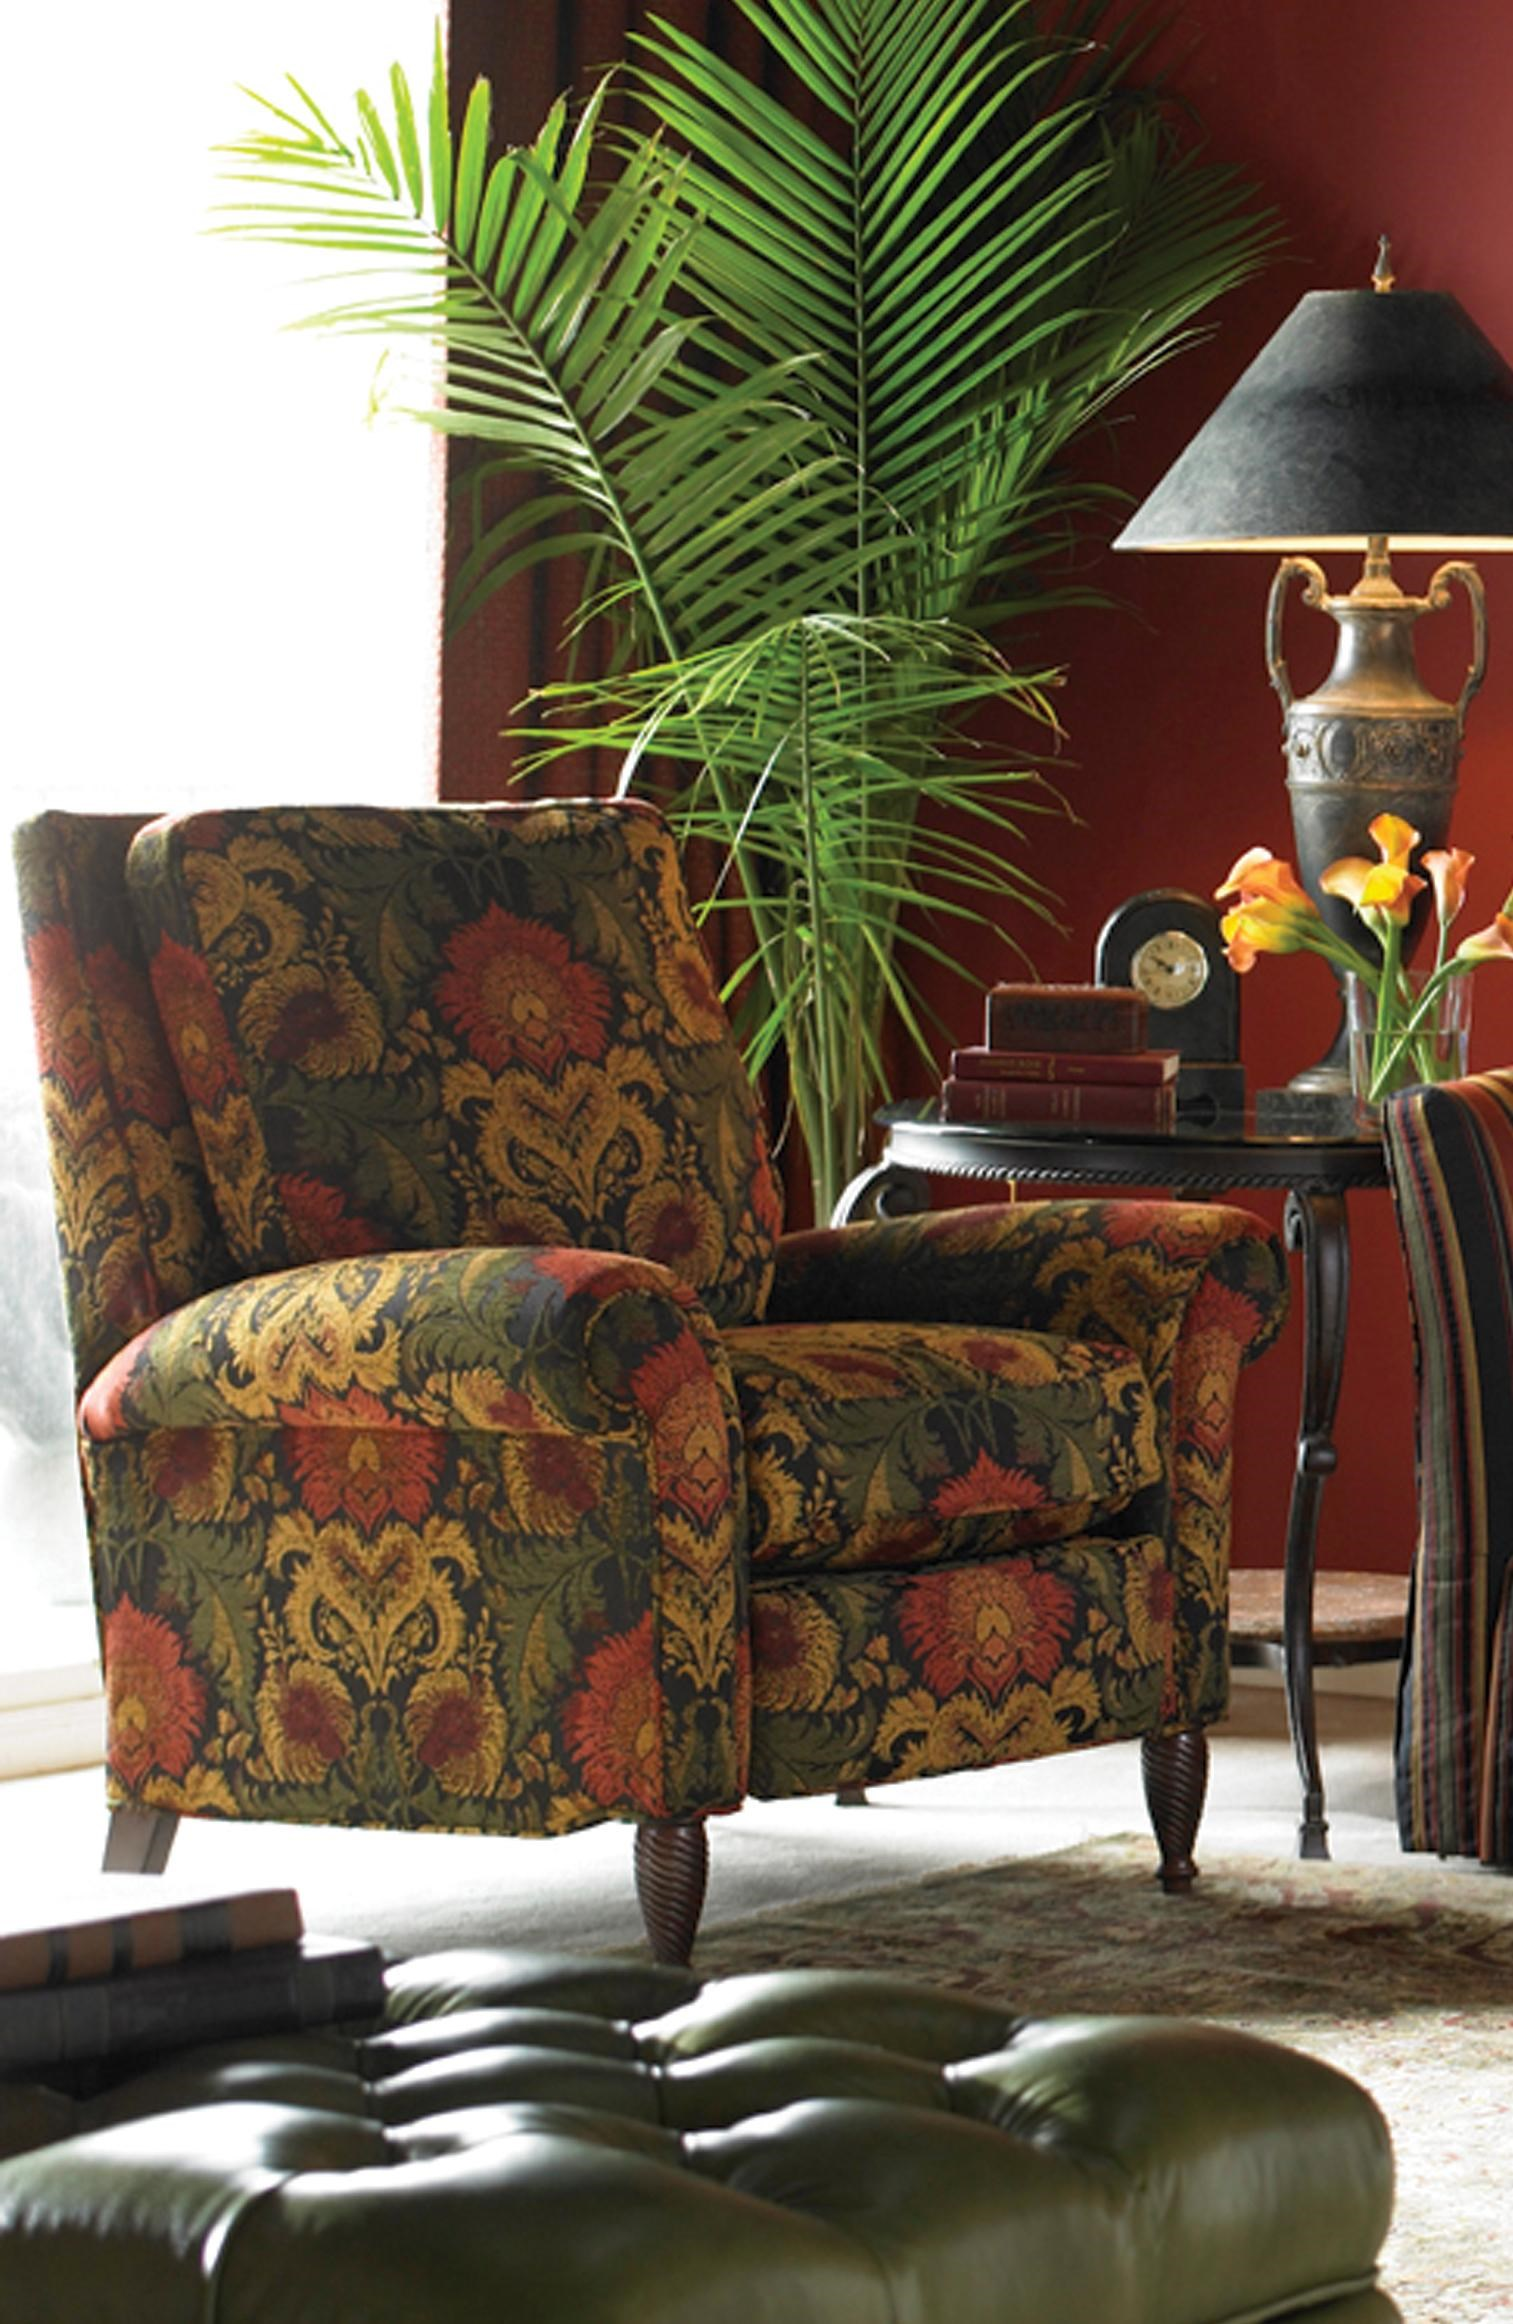 Recliners Fabric By MotionCraft By Sherrill